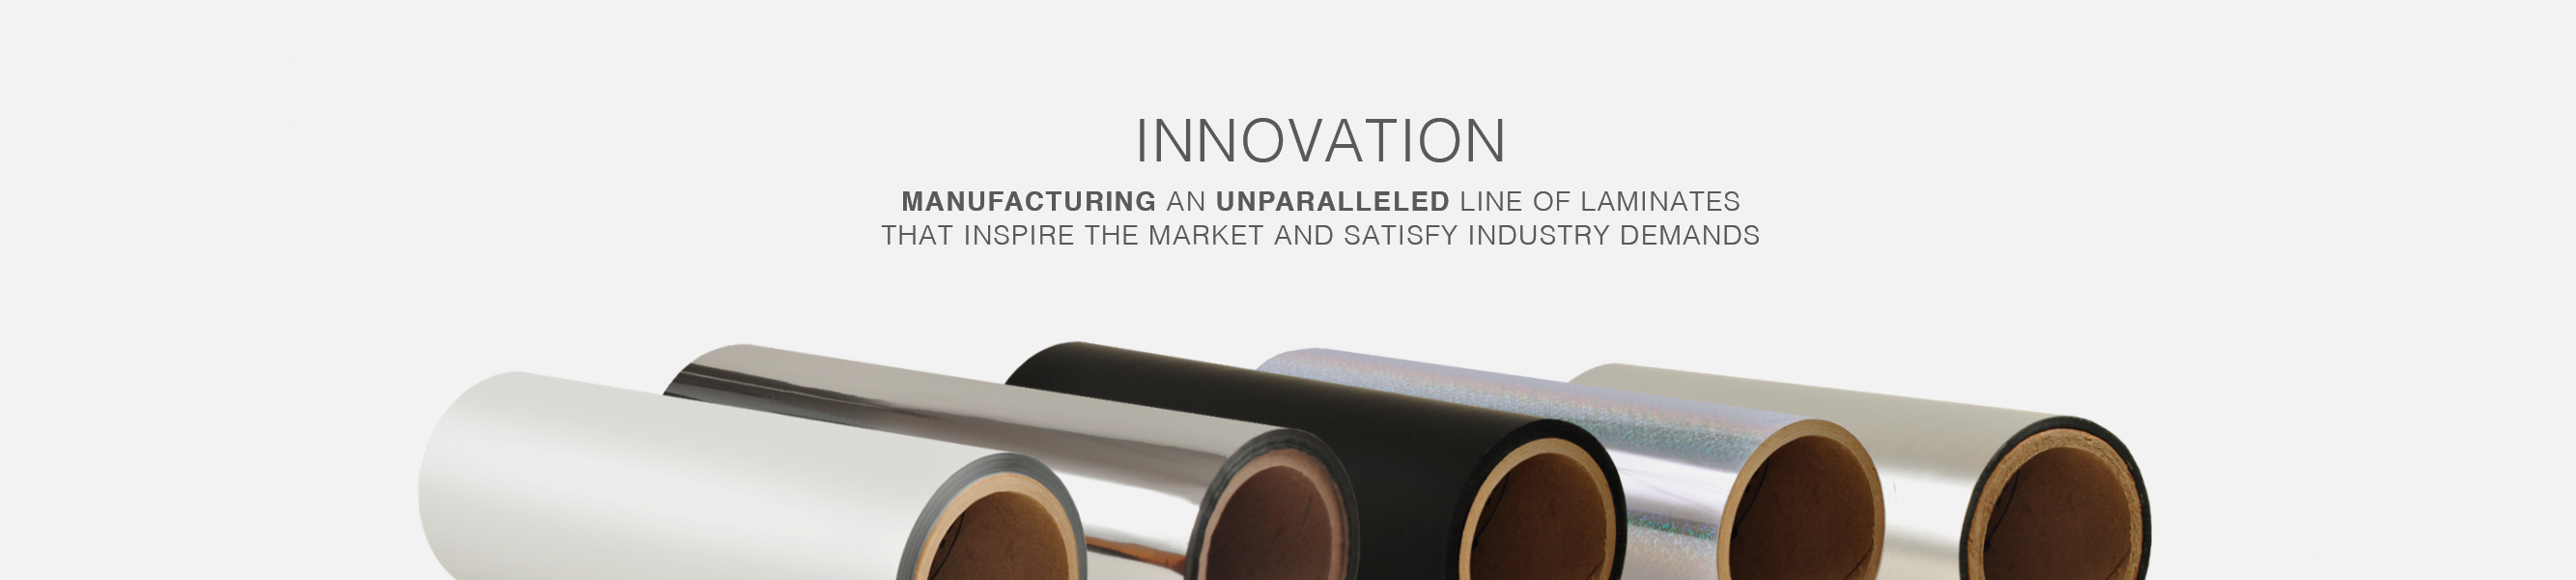 Nobelus believes in innovation, manufacturing an unparalleled line of laminates that inspire the market and satisfy industry demands.